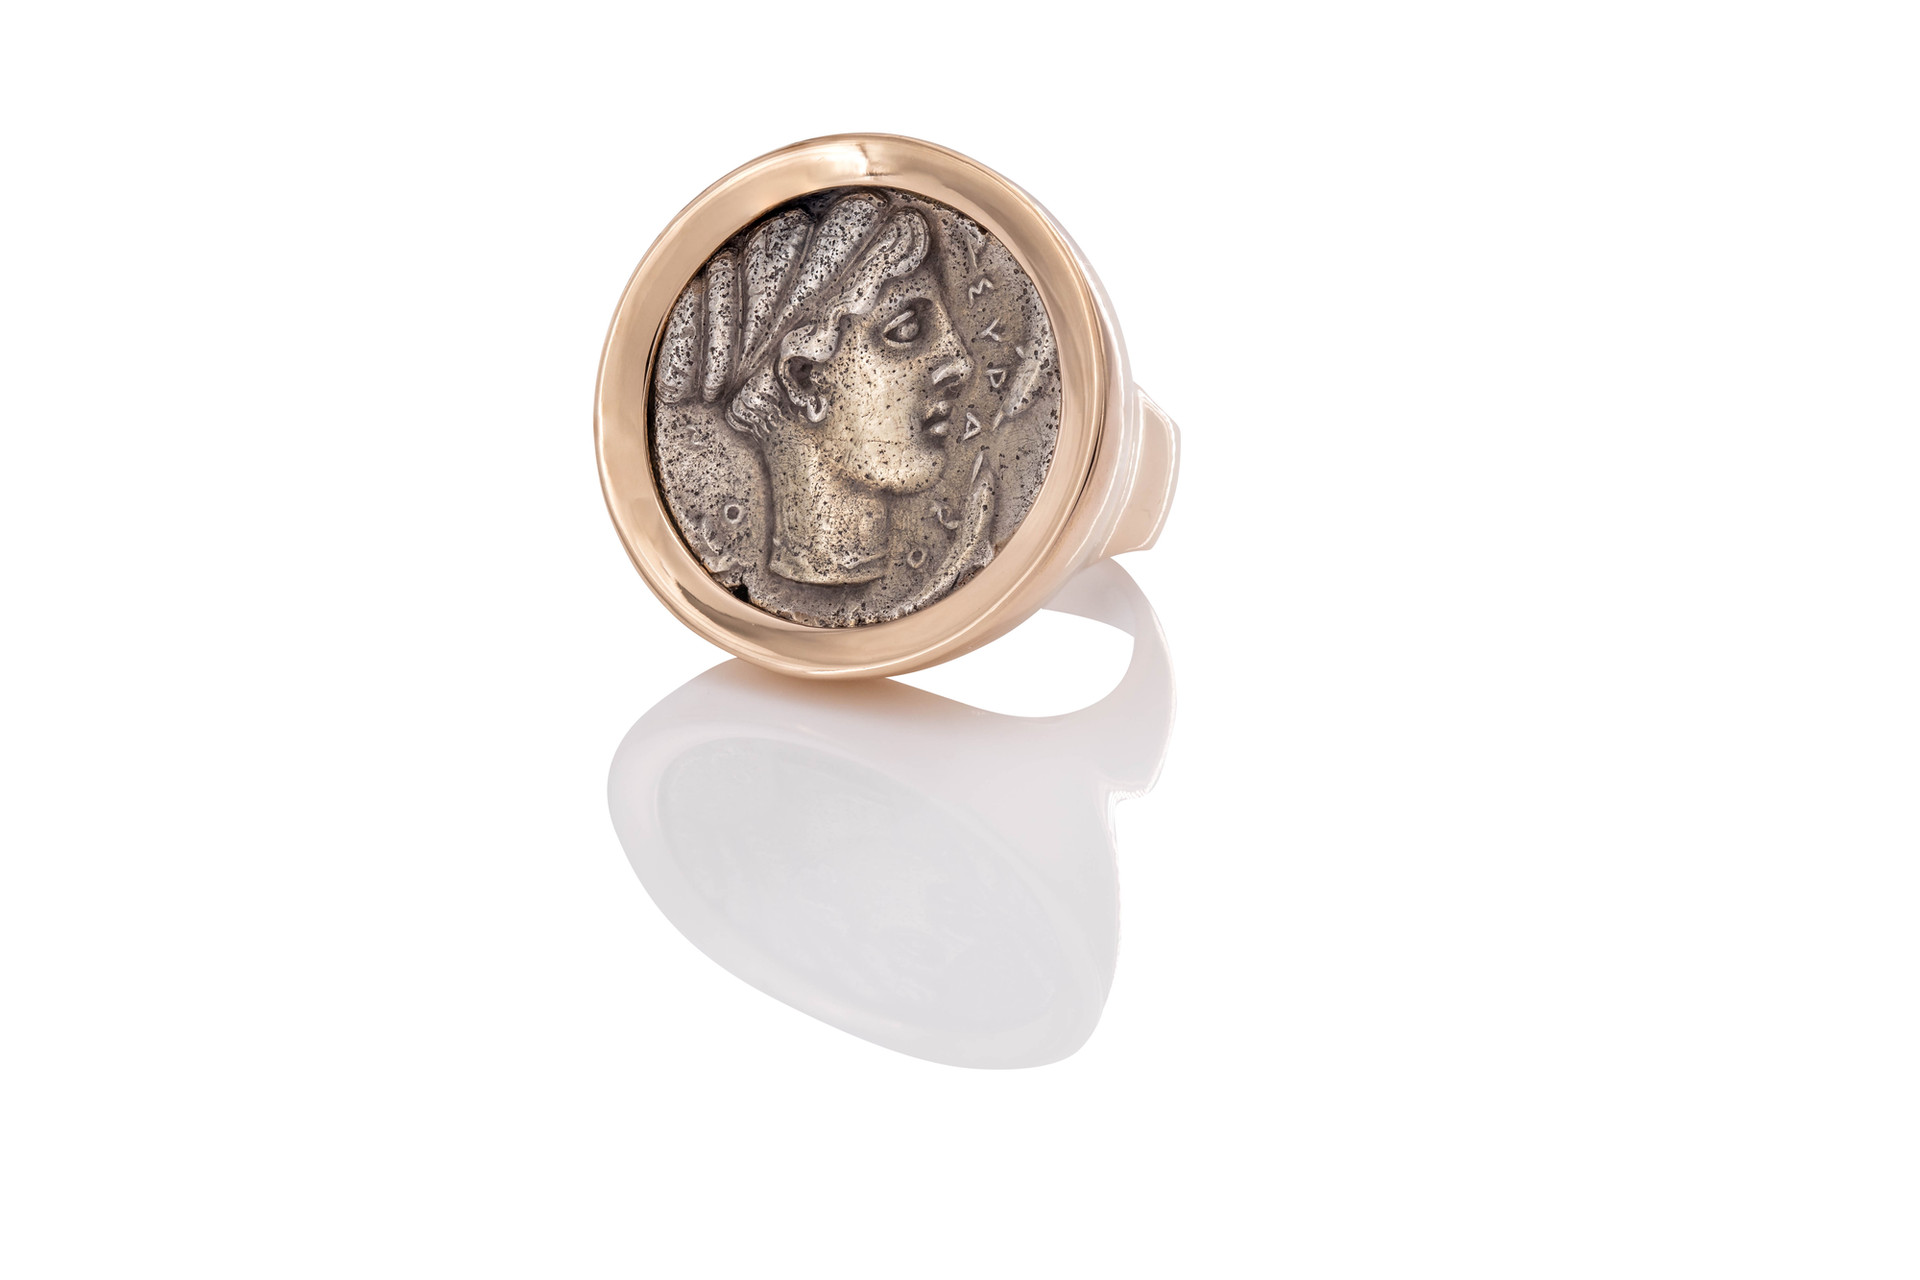 18k GOLD RING |  ARETHUSA  ancient greek coin   didrachma approx. 430-380 a.d.  Arethusa was a nymph and daughter of Nereus, who fled from her home in Arcadia beneath the sea and came up as a fresh water fountain on the island of Ortygia in Syracuse, Sicily. As a patron figure of Syracuse, the head of Arethusa surrounded by dolphins was a usual type on their coins. They are regarded as among the most famous and beautiful Ancient Greek coins.